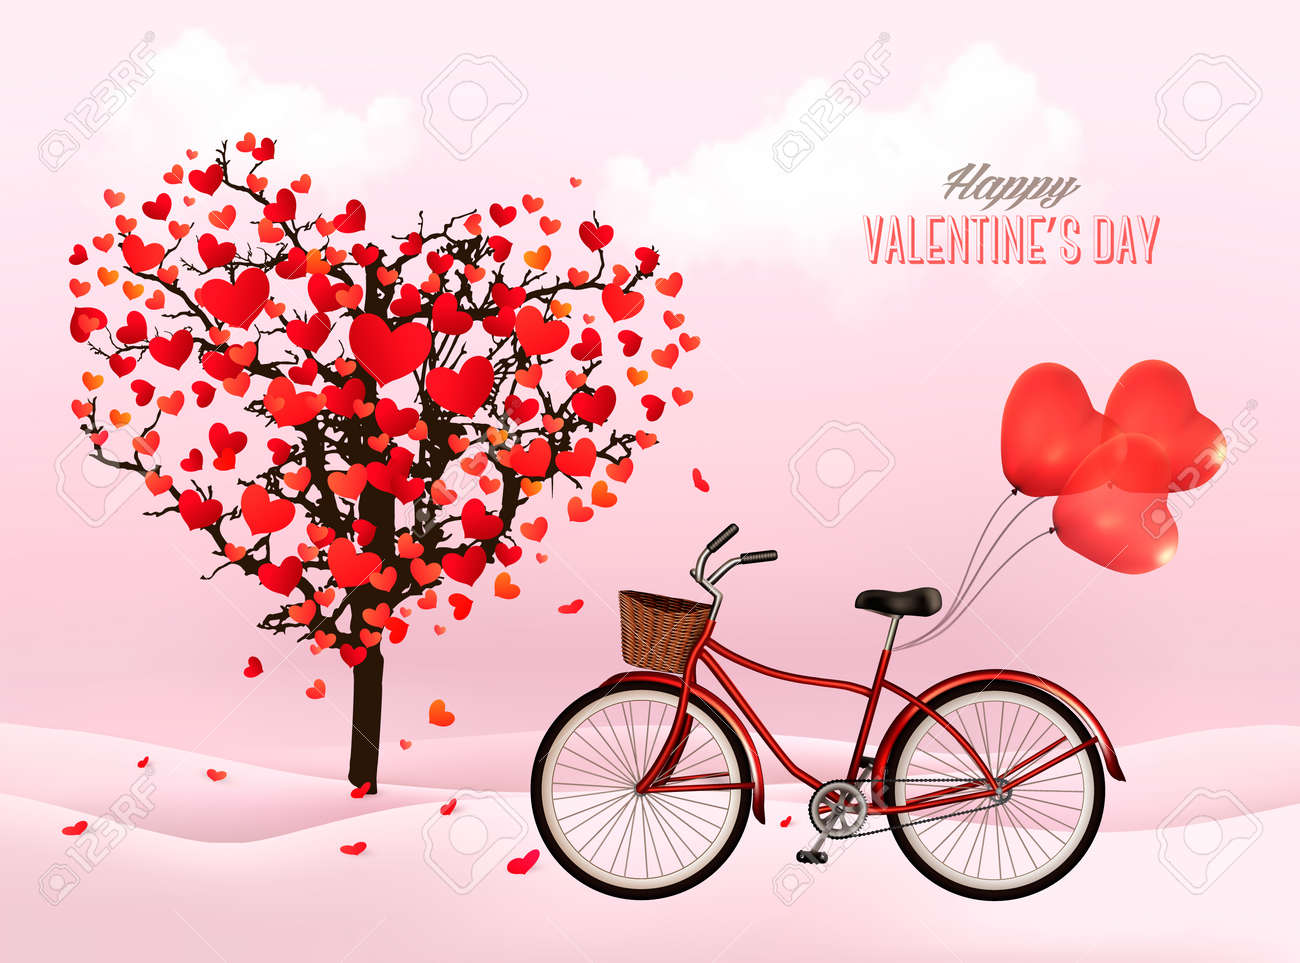 Valentine S Day Background With A Heart Shaped Tree And A Bicycle